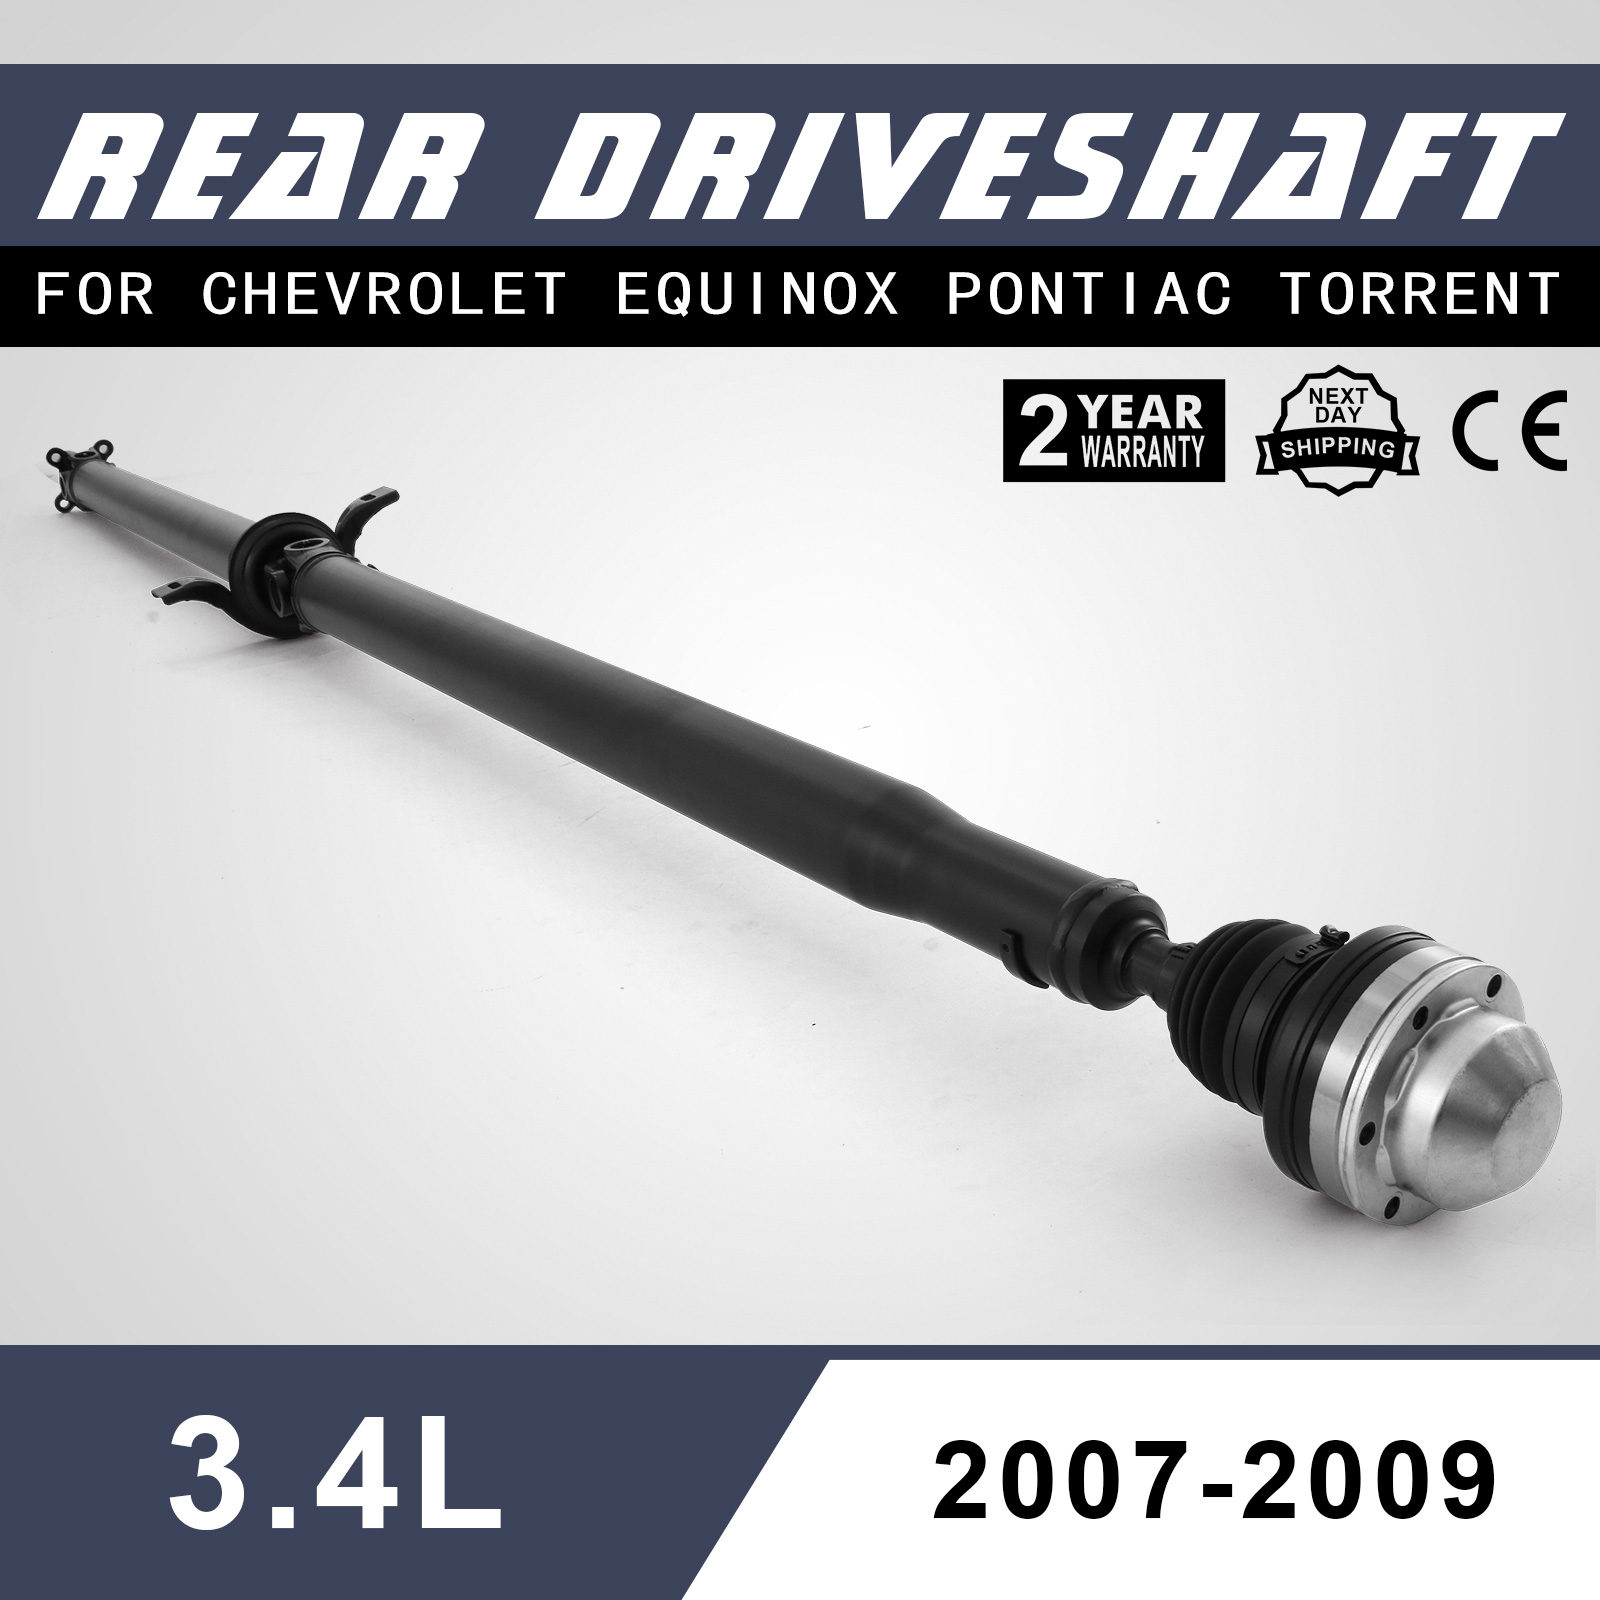 Chevy Equinox Driveshaft Drive Shaft Awd 07 09 Equinox